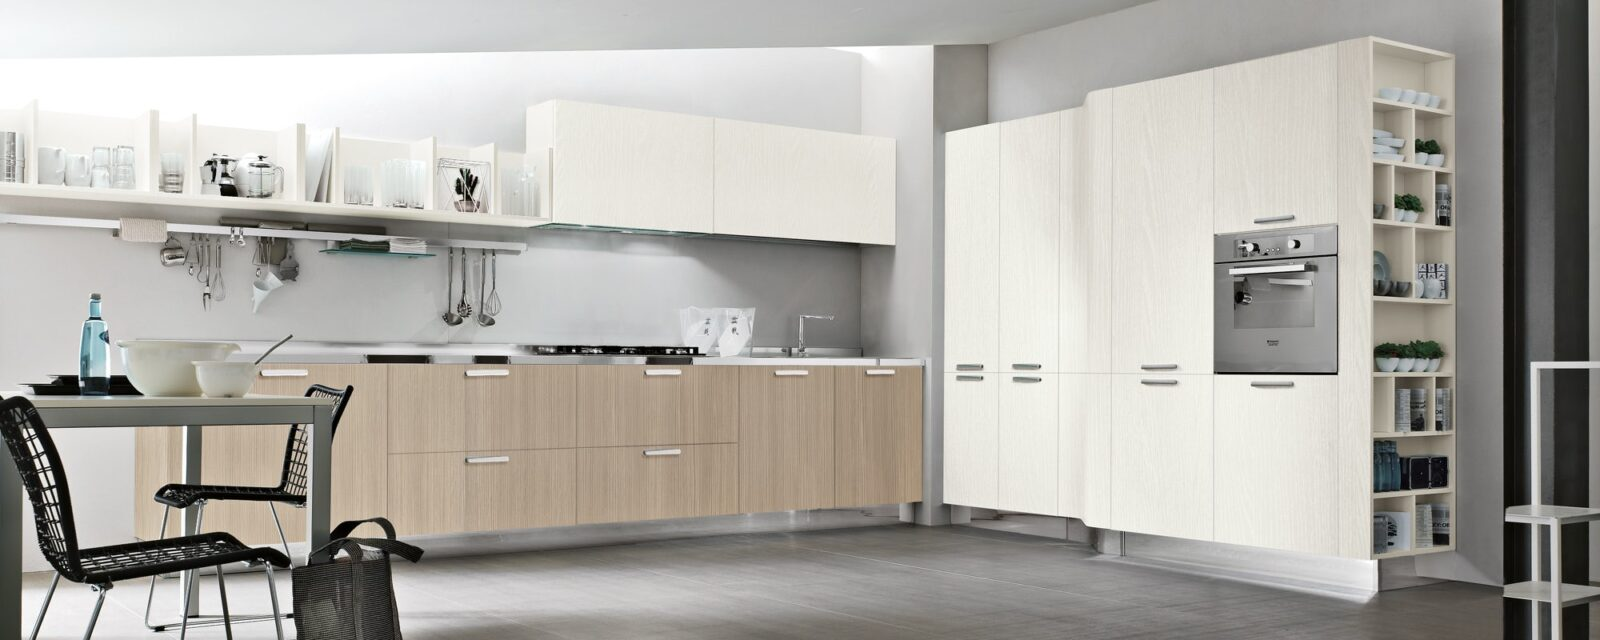 Cucina componibile milly by stosa mondocasa - Cucina stosa milly ...